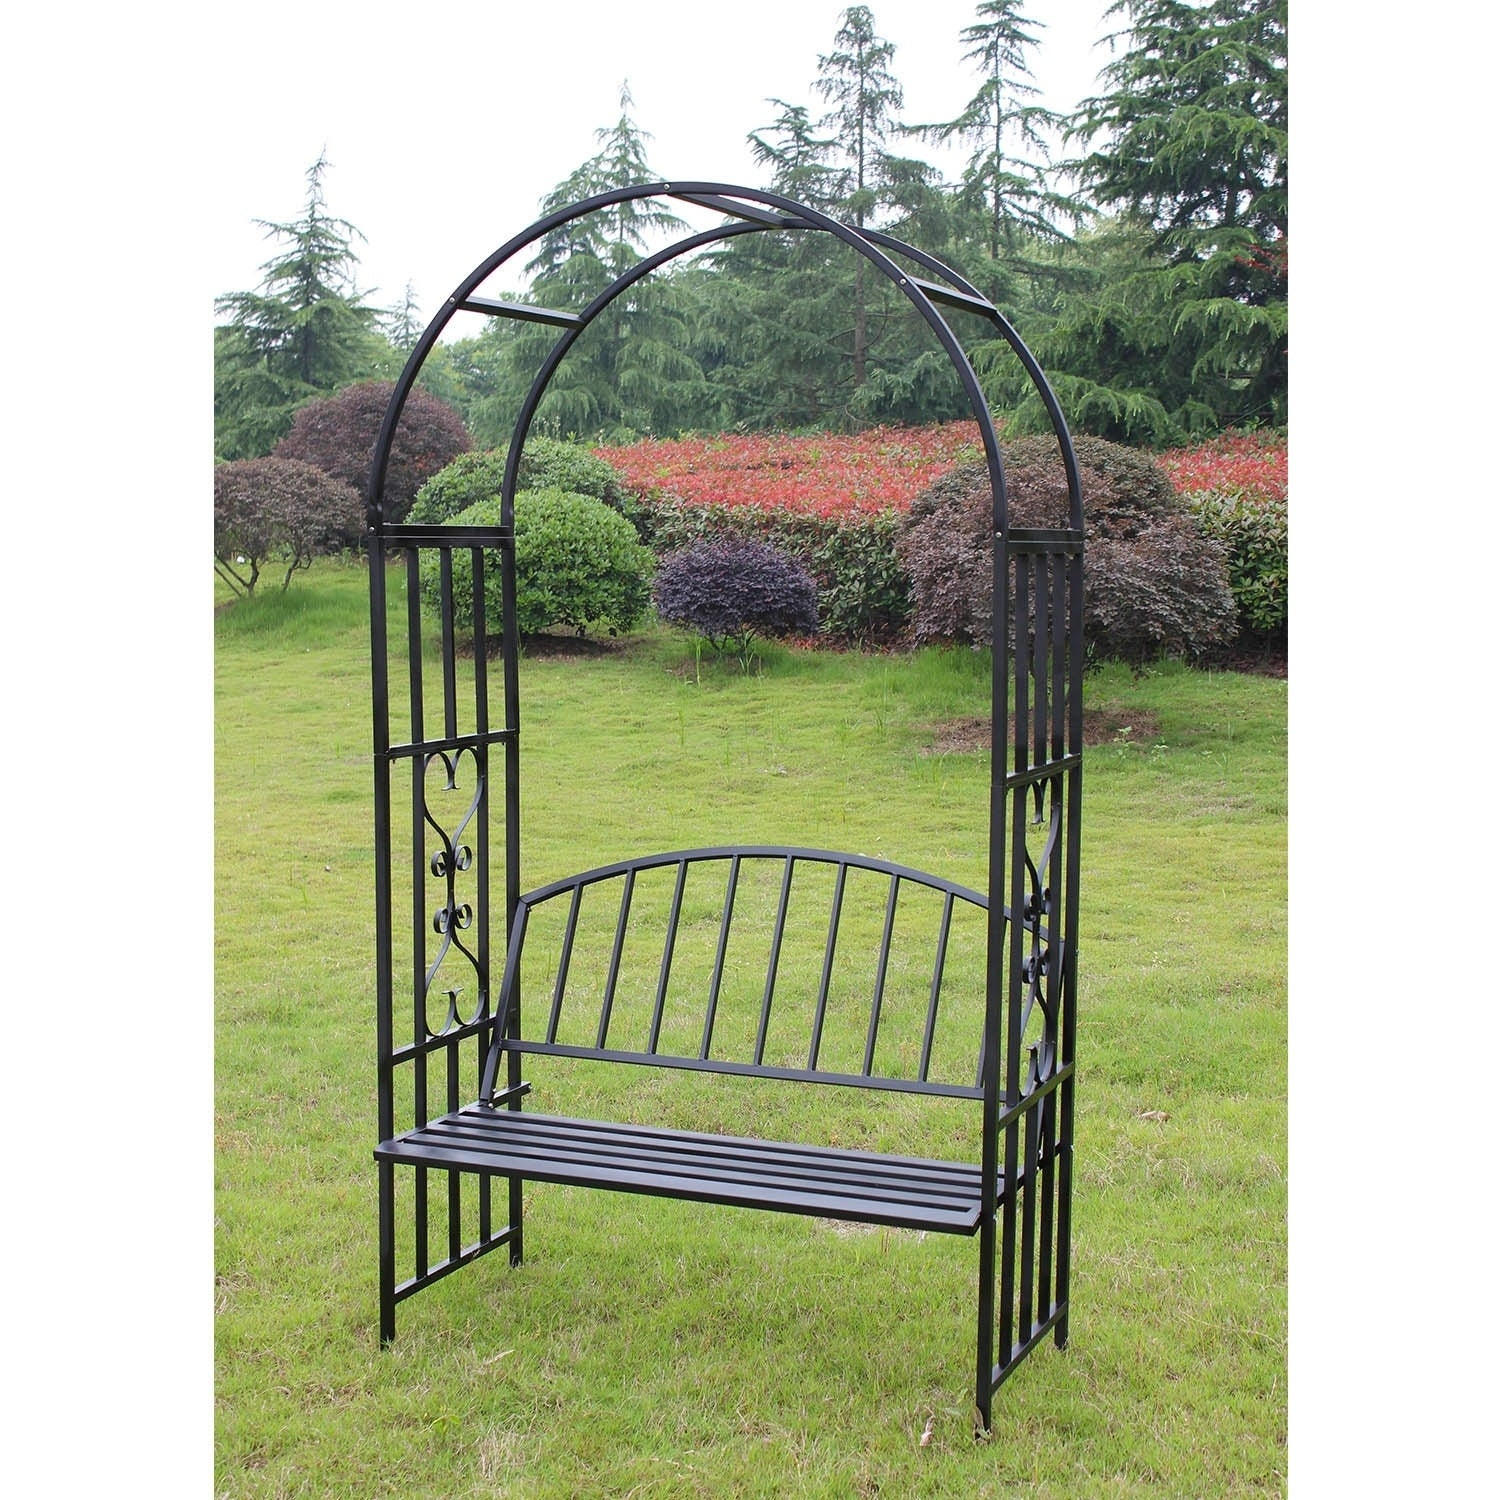 Shop Kinbor Outdoor Metal Garden Arch With Seat Bench Arch Garden Arbour  For Climbing Plant - Free Shipping Today - Overstock.com - 23131608 - Shop Kinbor Outdoor Metal Garden Arch With Seat Bench Arch Garden